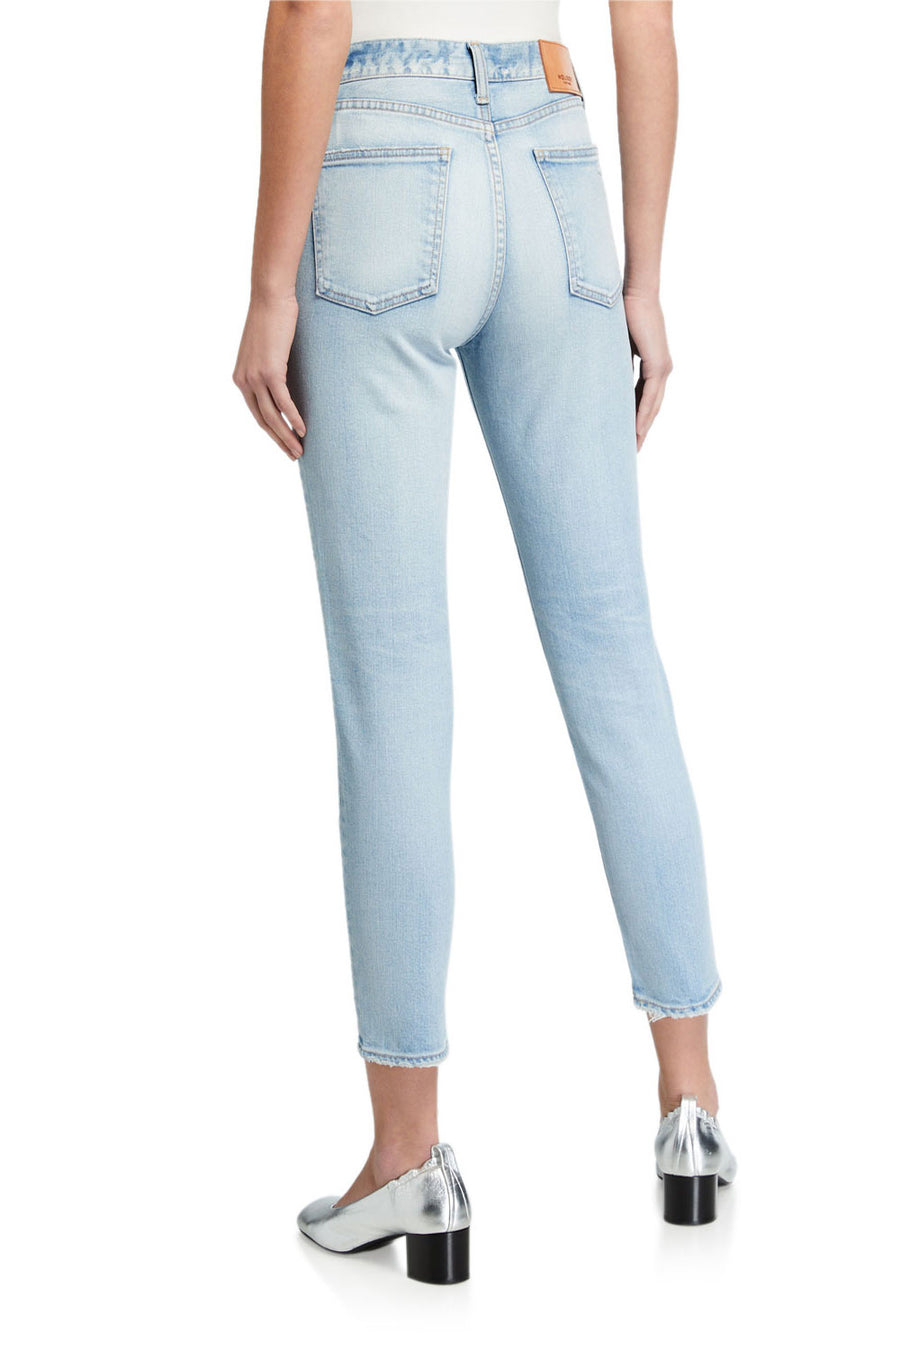 Hillrose Skinny High Waisted Skinny - Light Blue - Pavilion